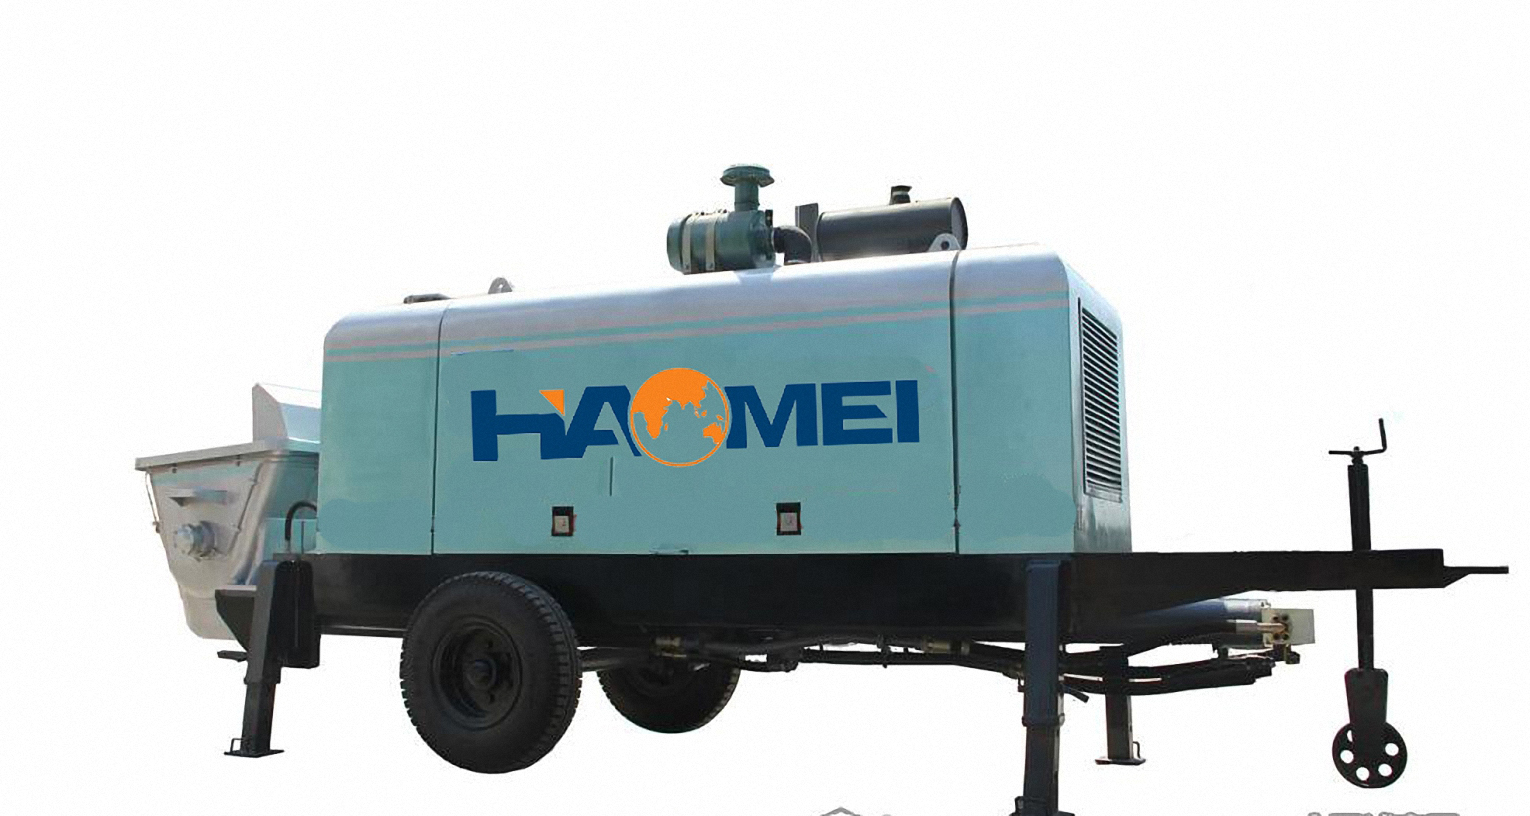 Haomei concrete pumps sell well all over the world